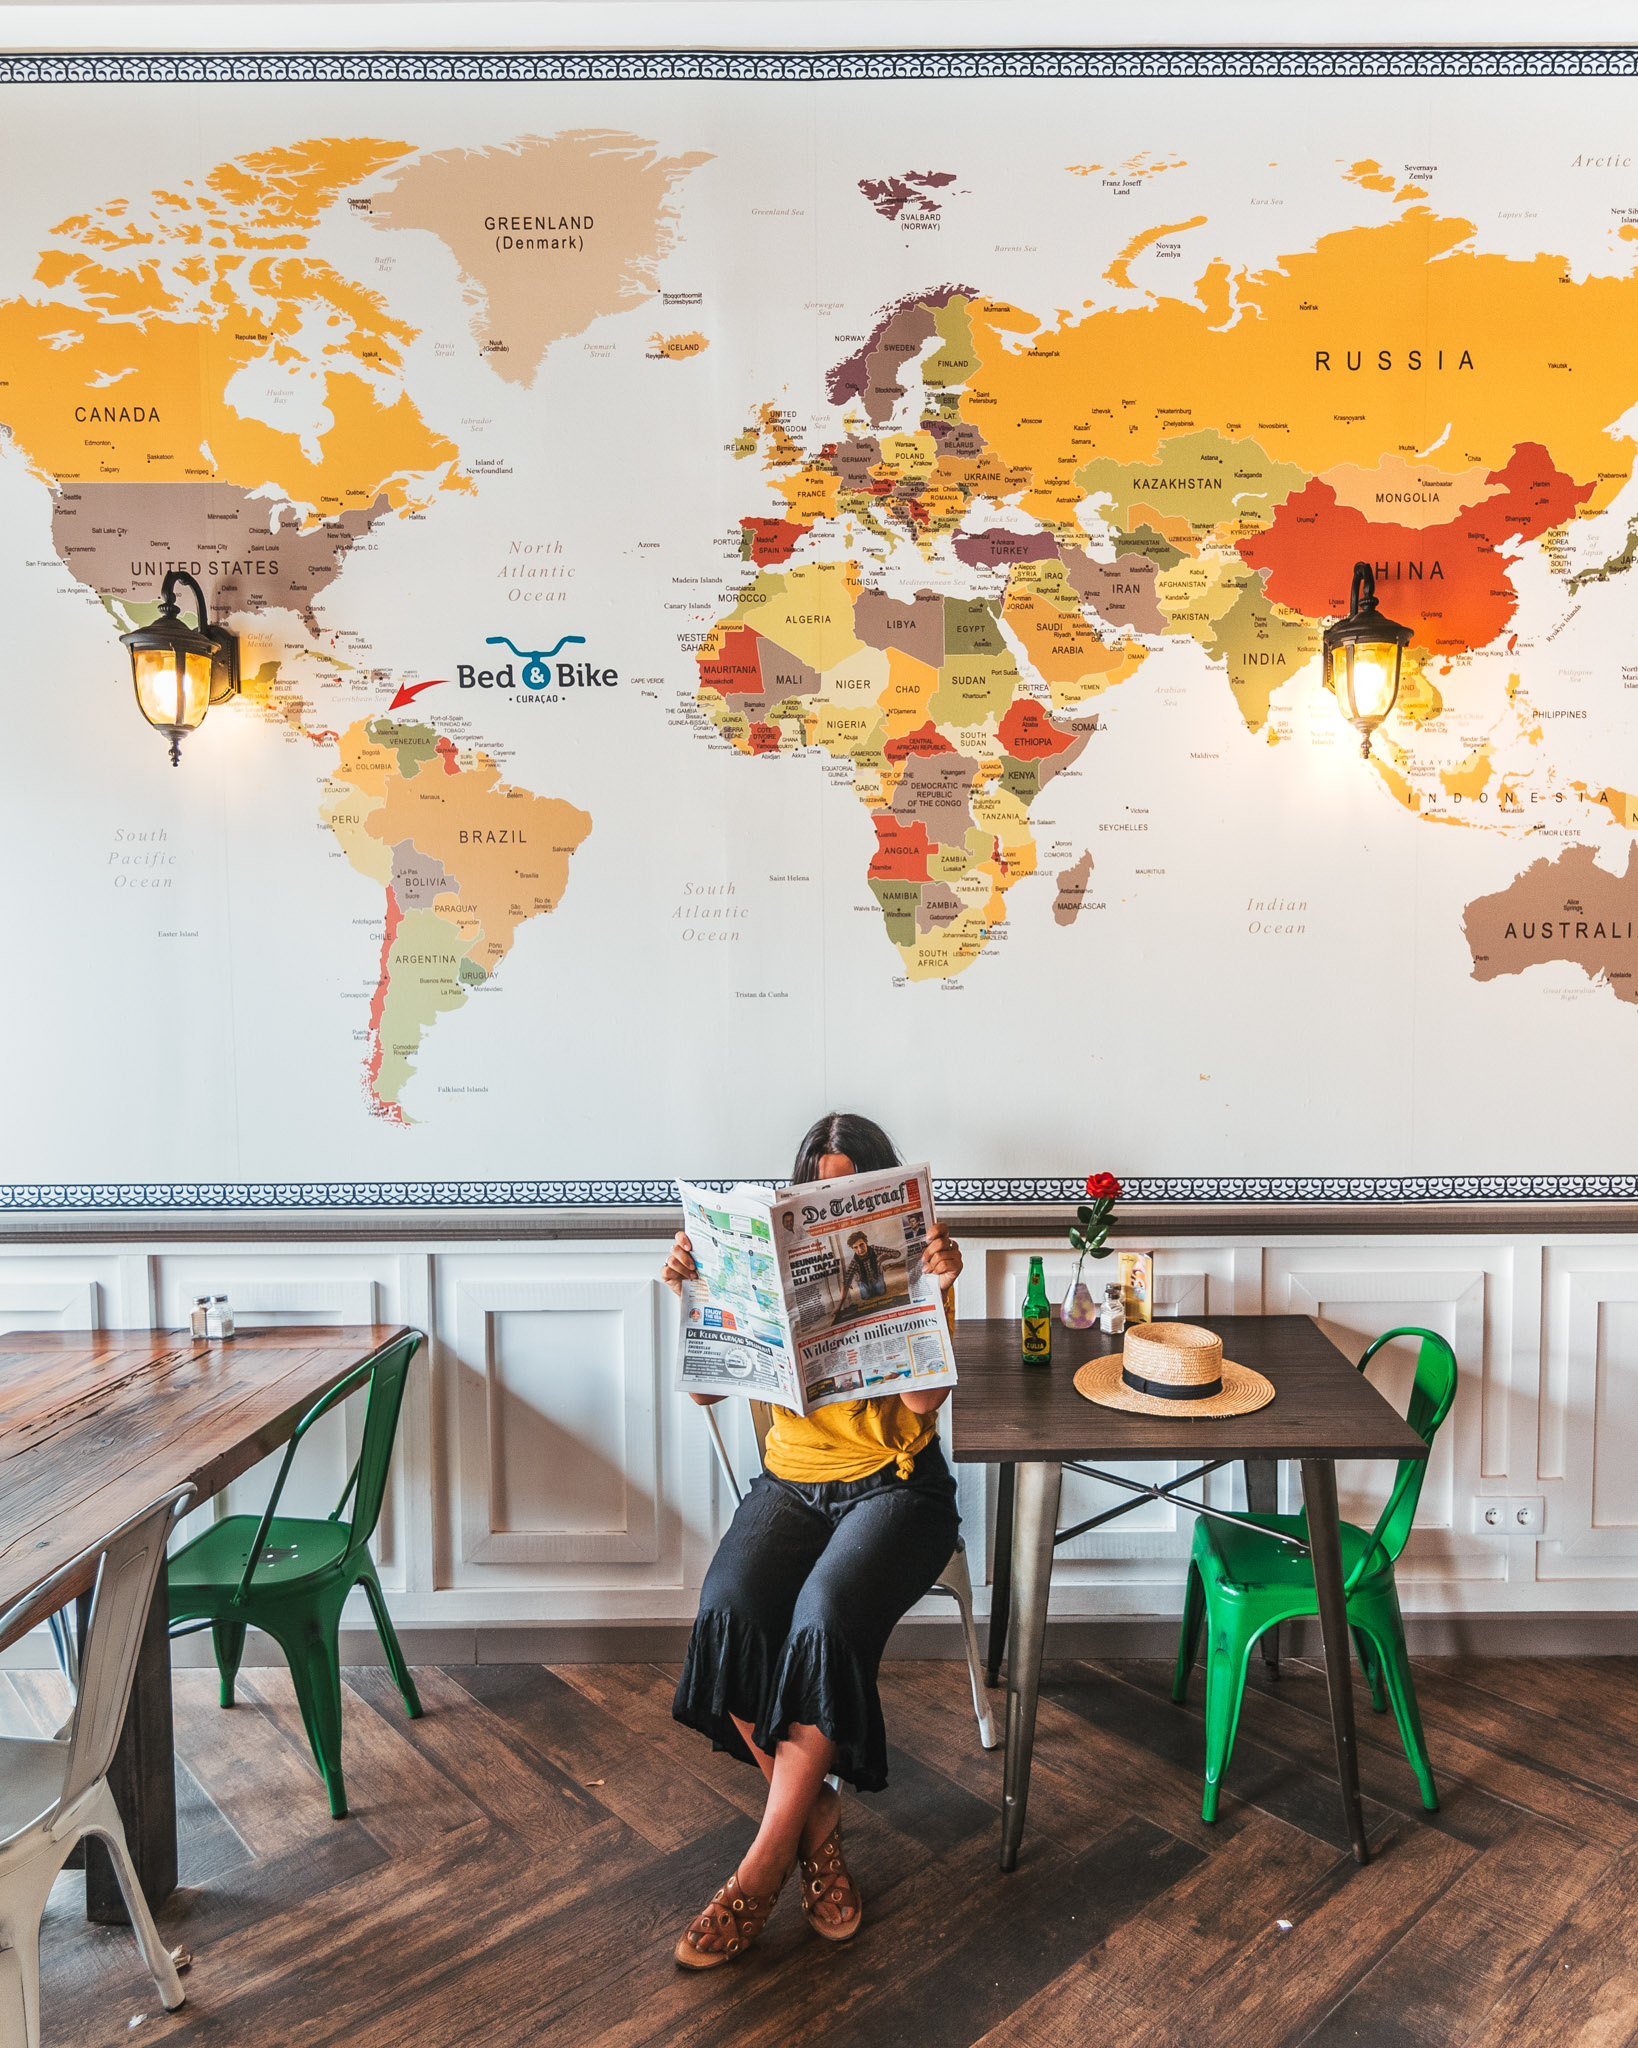 A cute cafe with a map on the wall in Willemstad, Curaçao // 20 Photos to Show You Why Curaçao Needs to Be On Your Travel Radar // www.readysetjetset.net #readysetjetset #curacao #caribbean #beach #ocean #paradise #travel